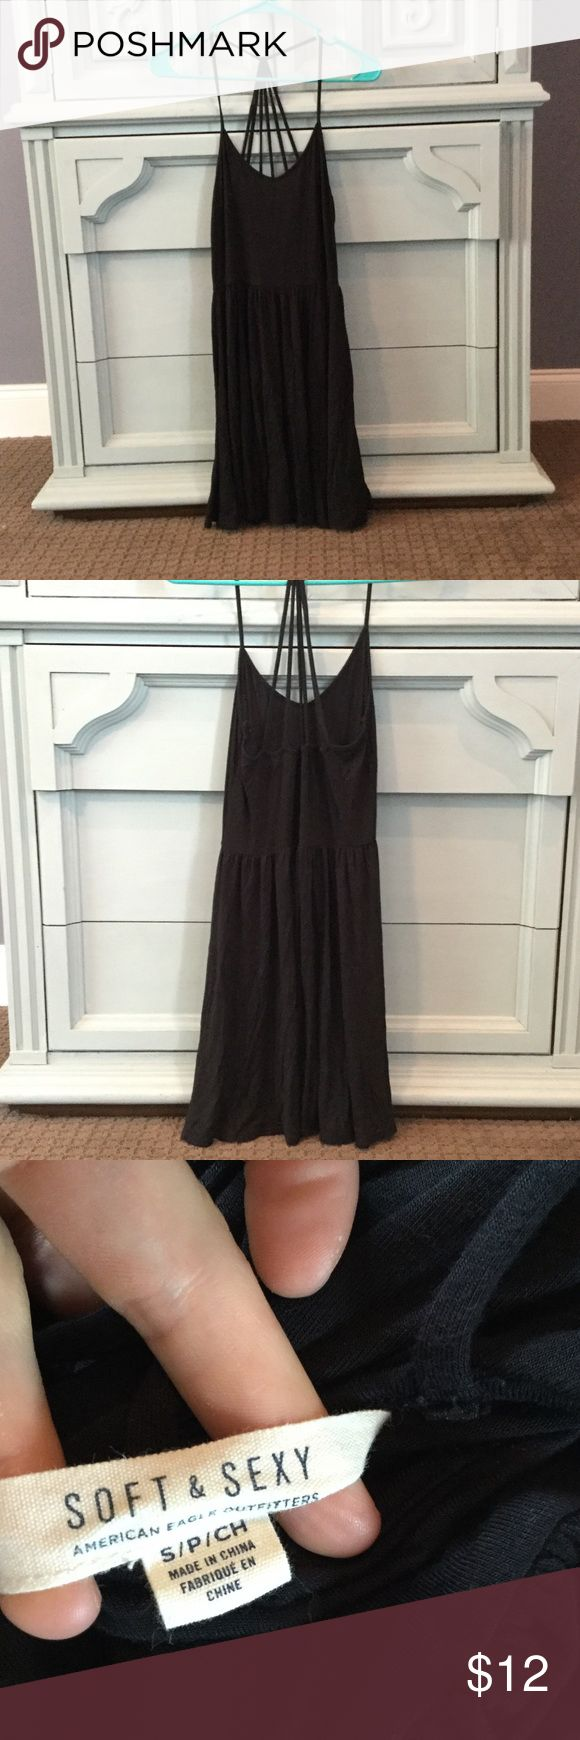 American Eagle dress sz S American Eagle soft and sexy light weight dress sz S. Never worn. American Eagle Outfitters Dresses